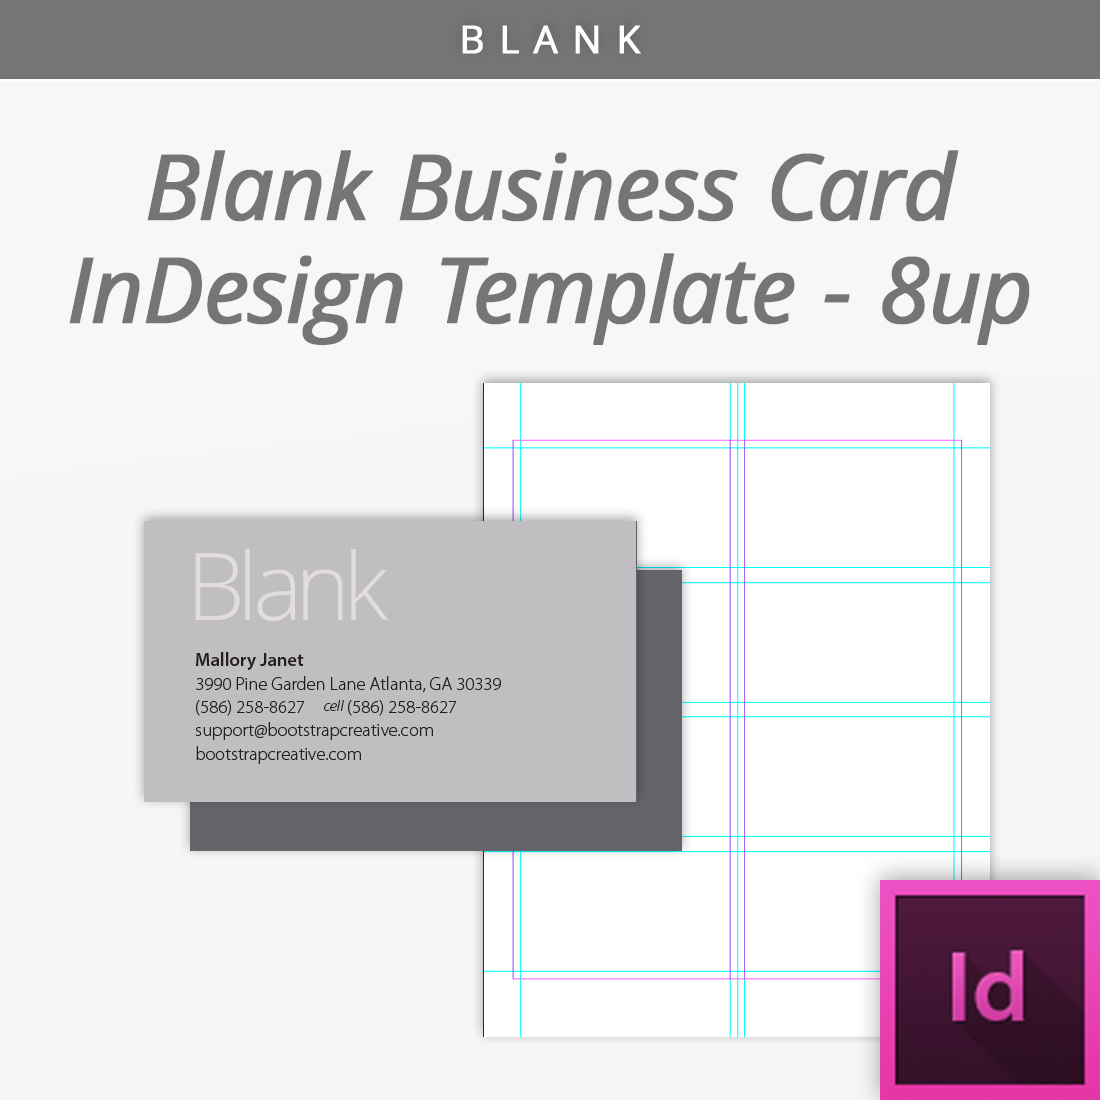 Blank business card template bc shop bootstrapcreative colourmoves